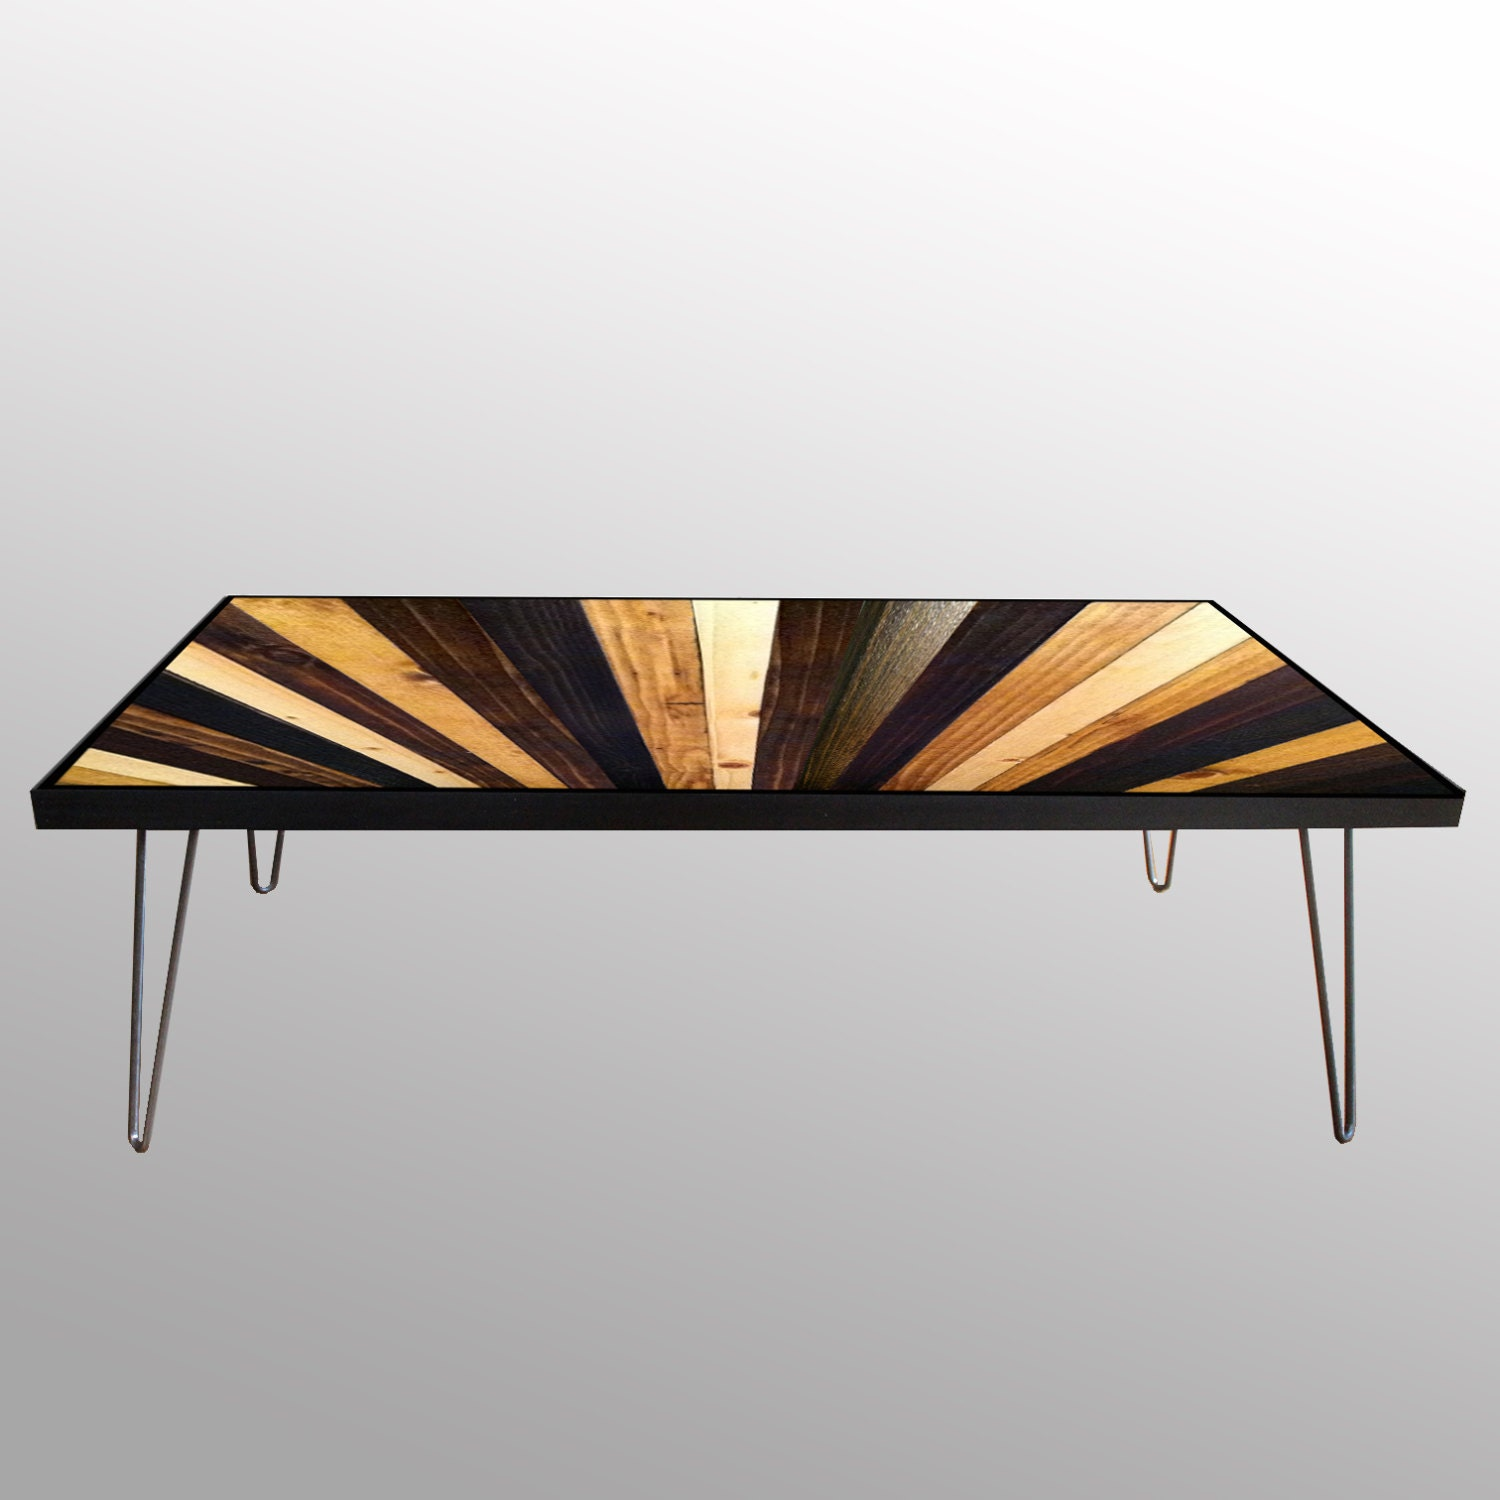 Stained Sunburst Reclaimed Wood Coffee Table Or Desk